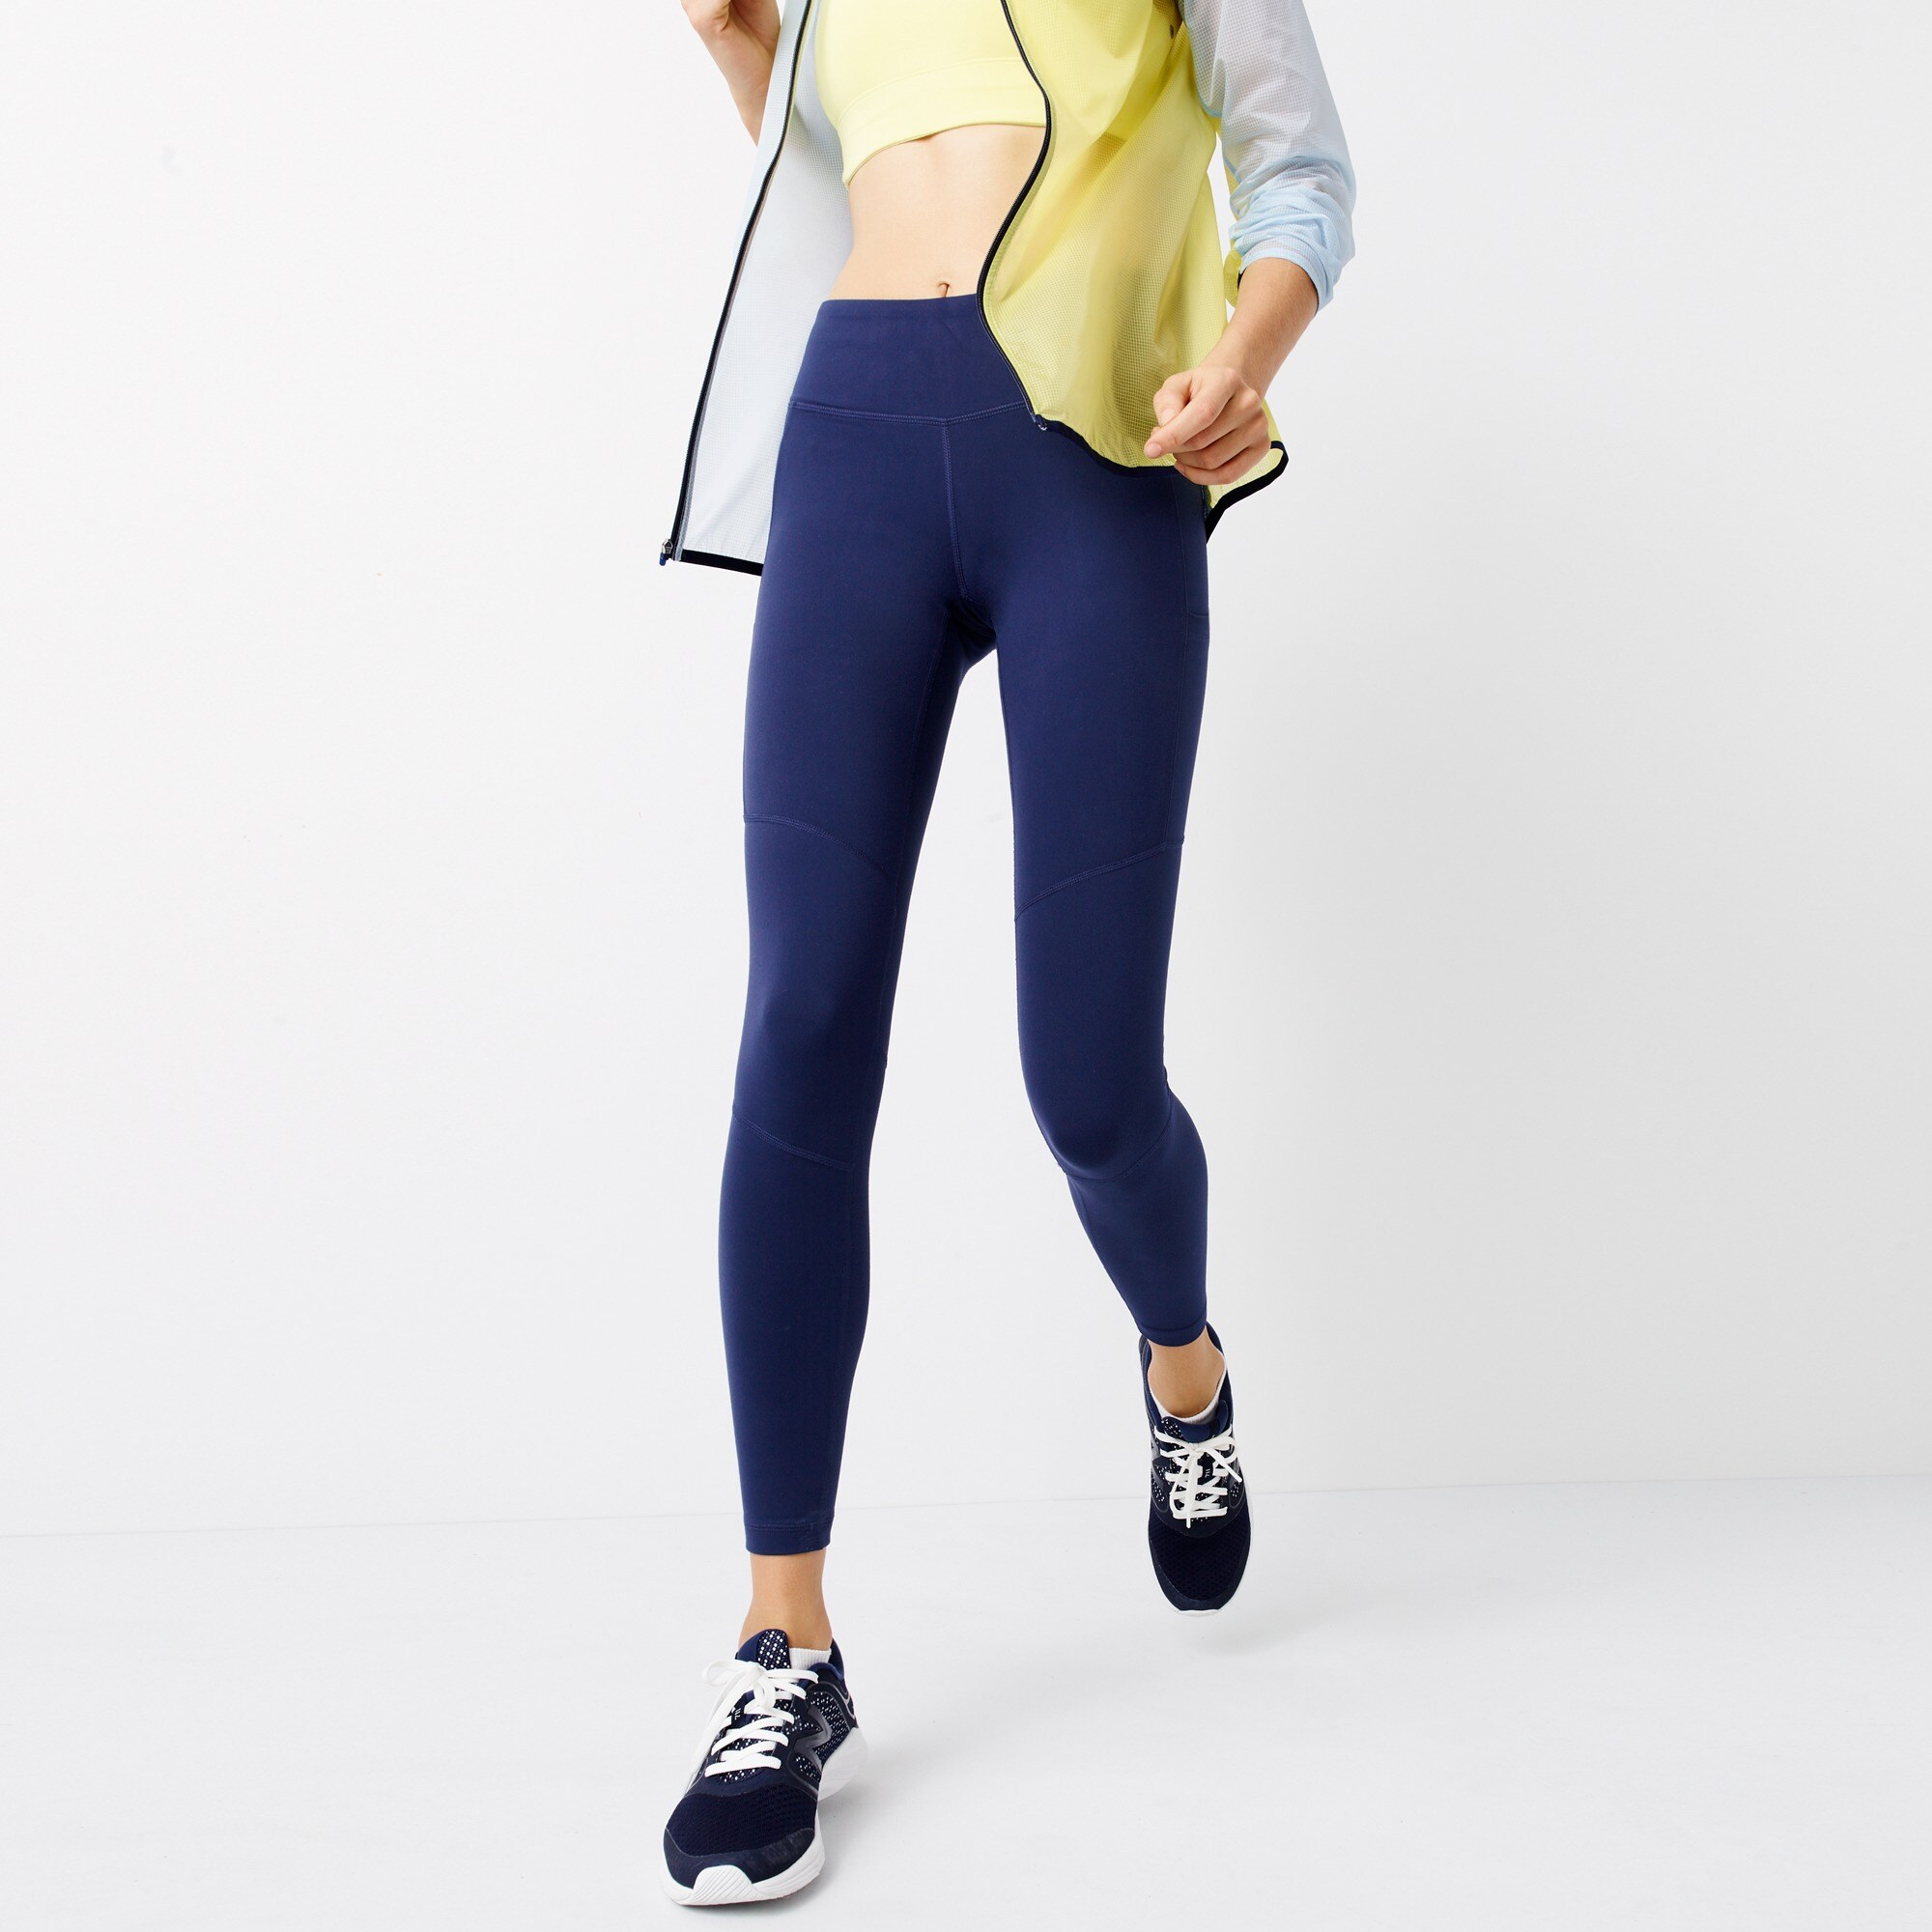 Image 3 for New Balance® for J.Crew performance leggings